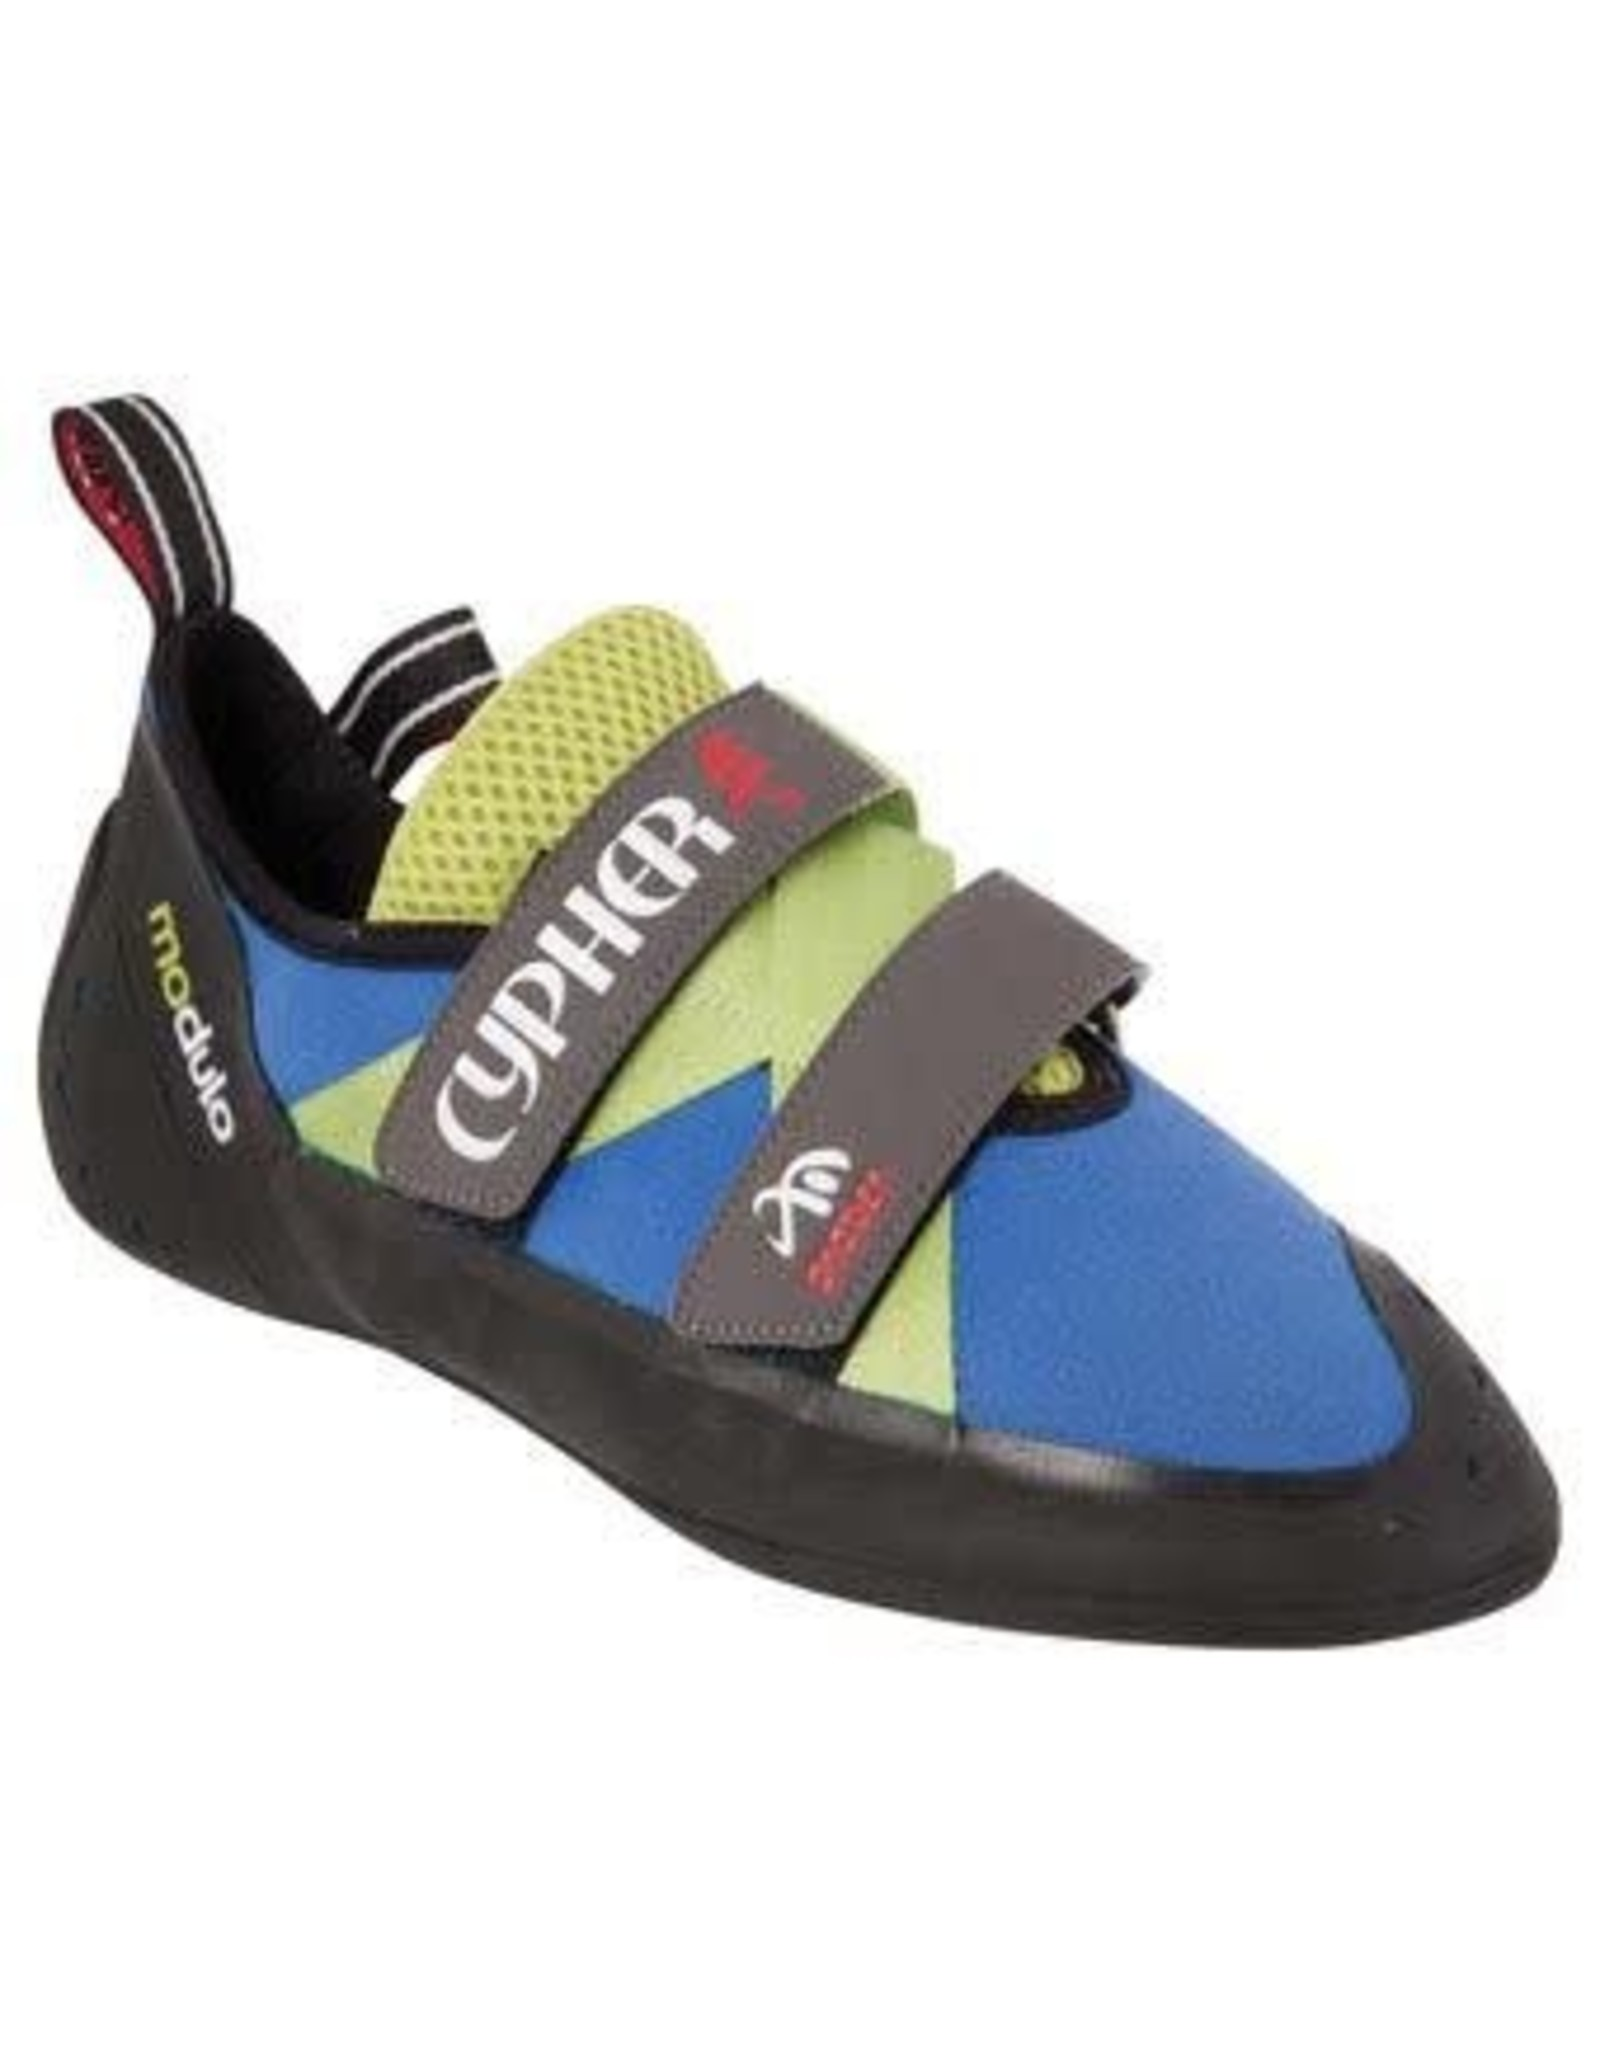 Climbing Shoes, Cypher Modulo - Size 4.5